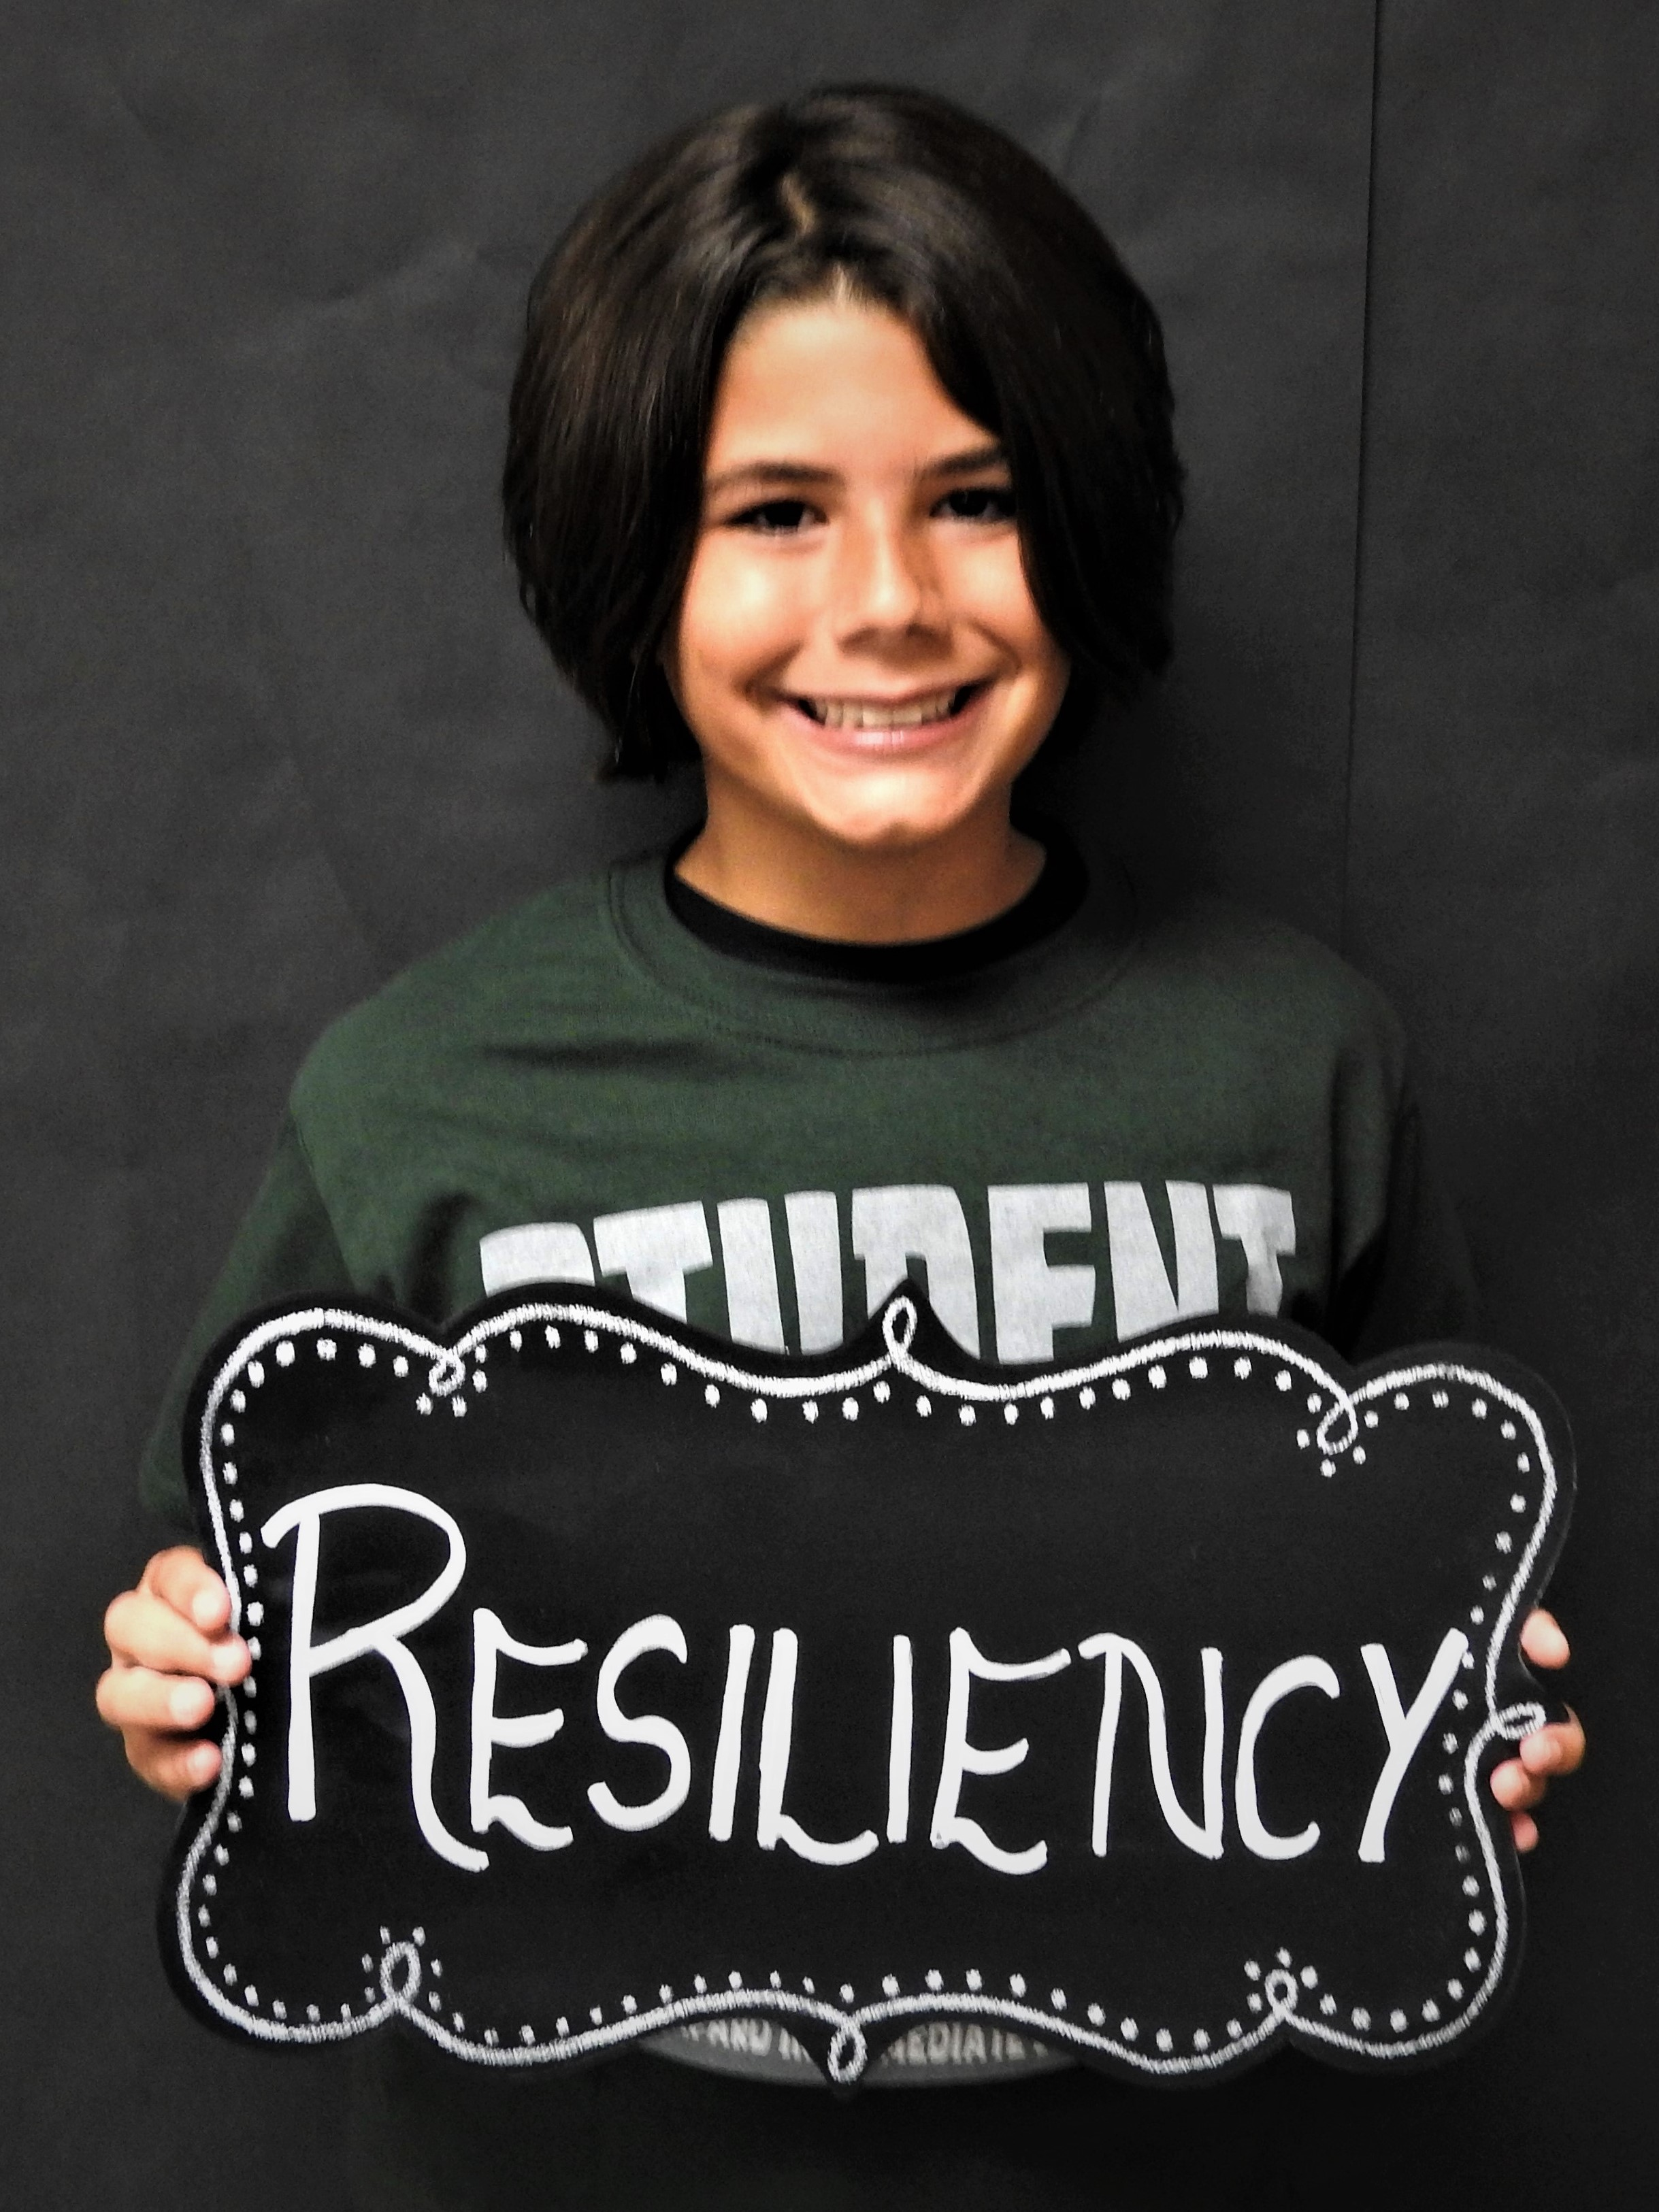 Rebecca Galloway - resiliency